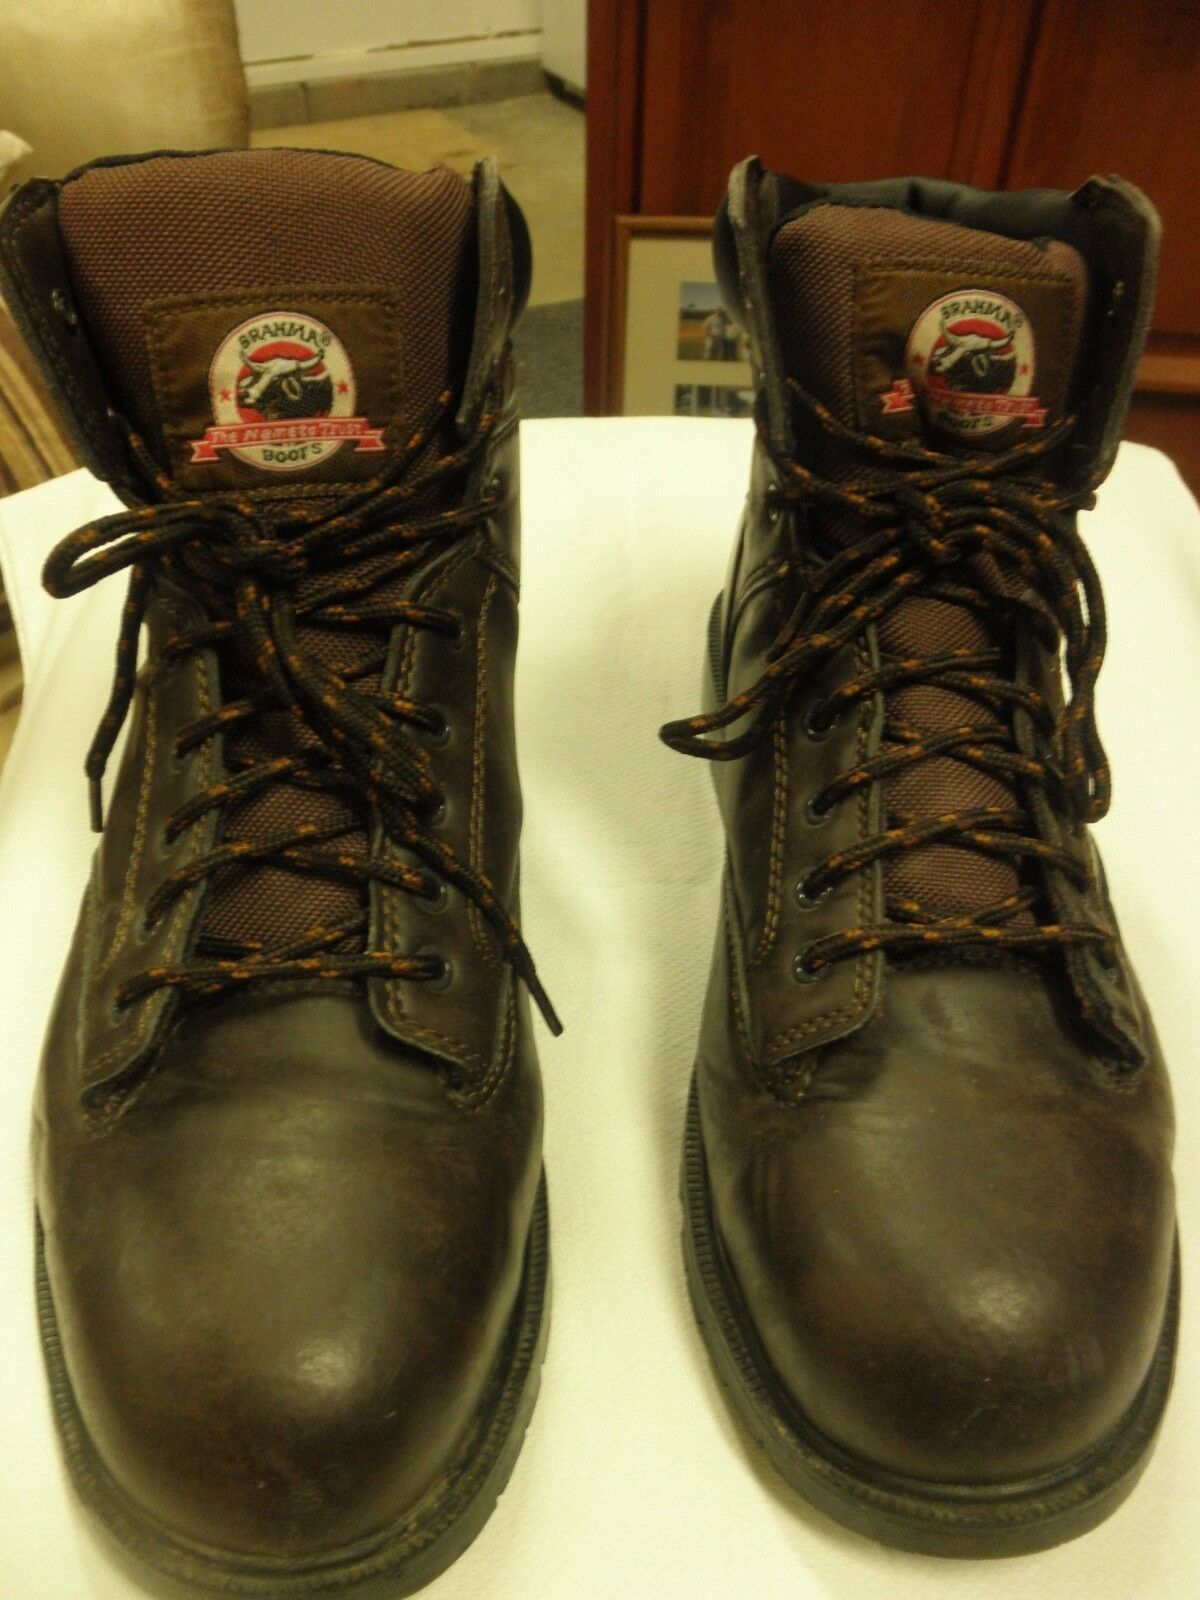 BRAHMA The Name To Trust STEEL TOE Men's Boot available  size 13 DARK Brown